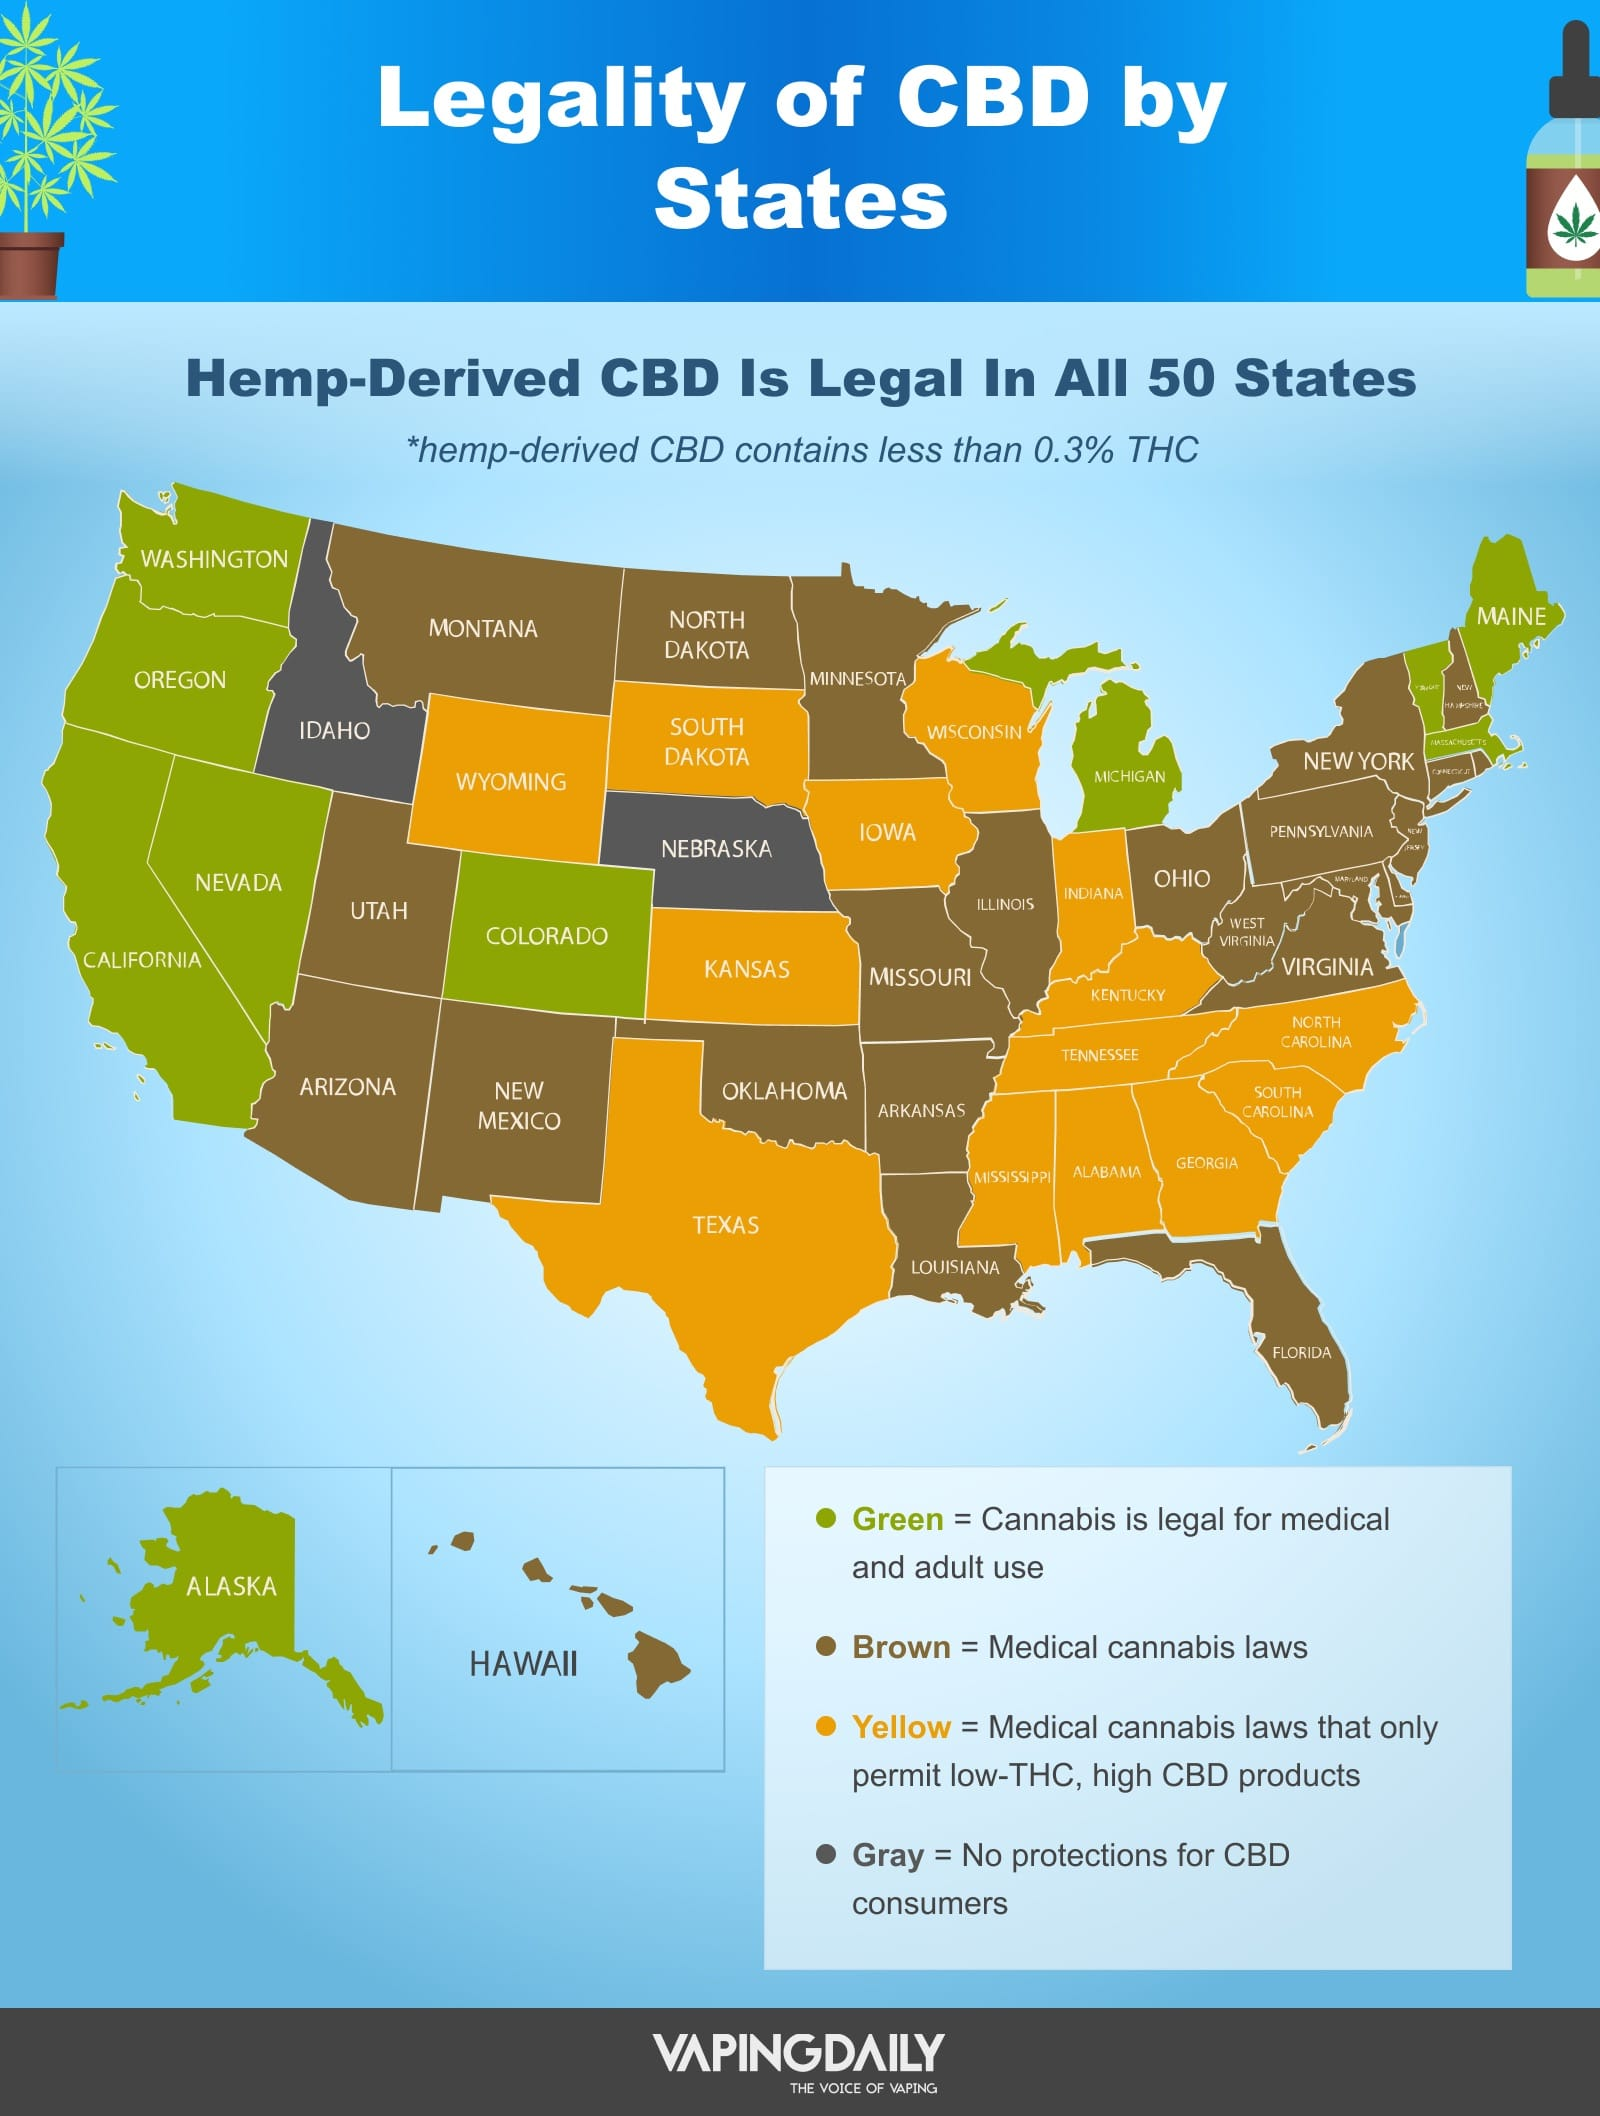 legality of CBD by states USA